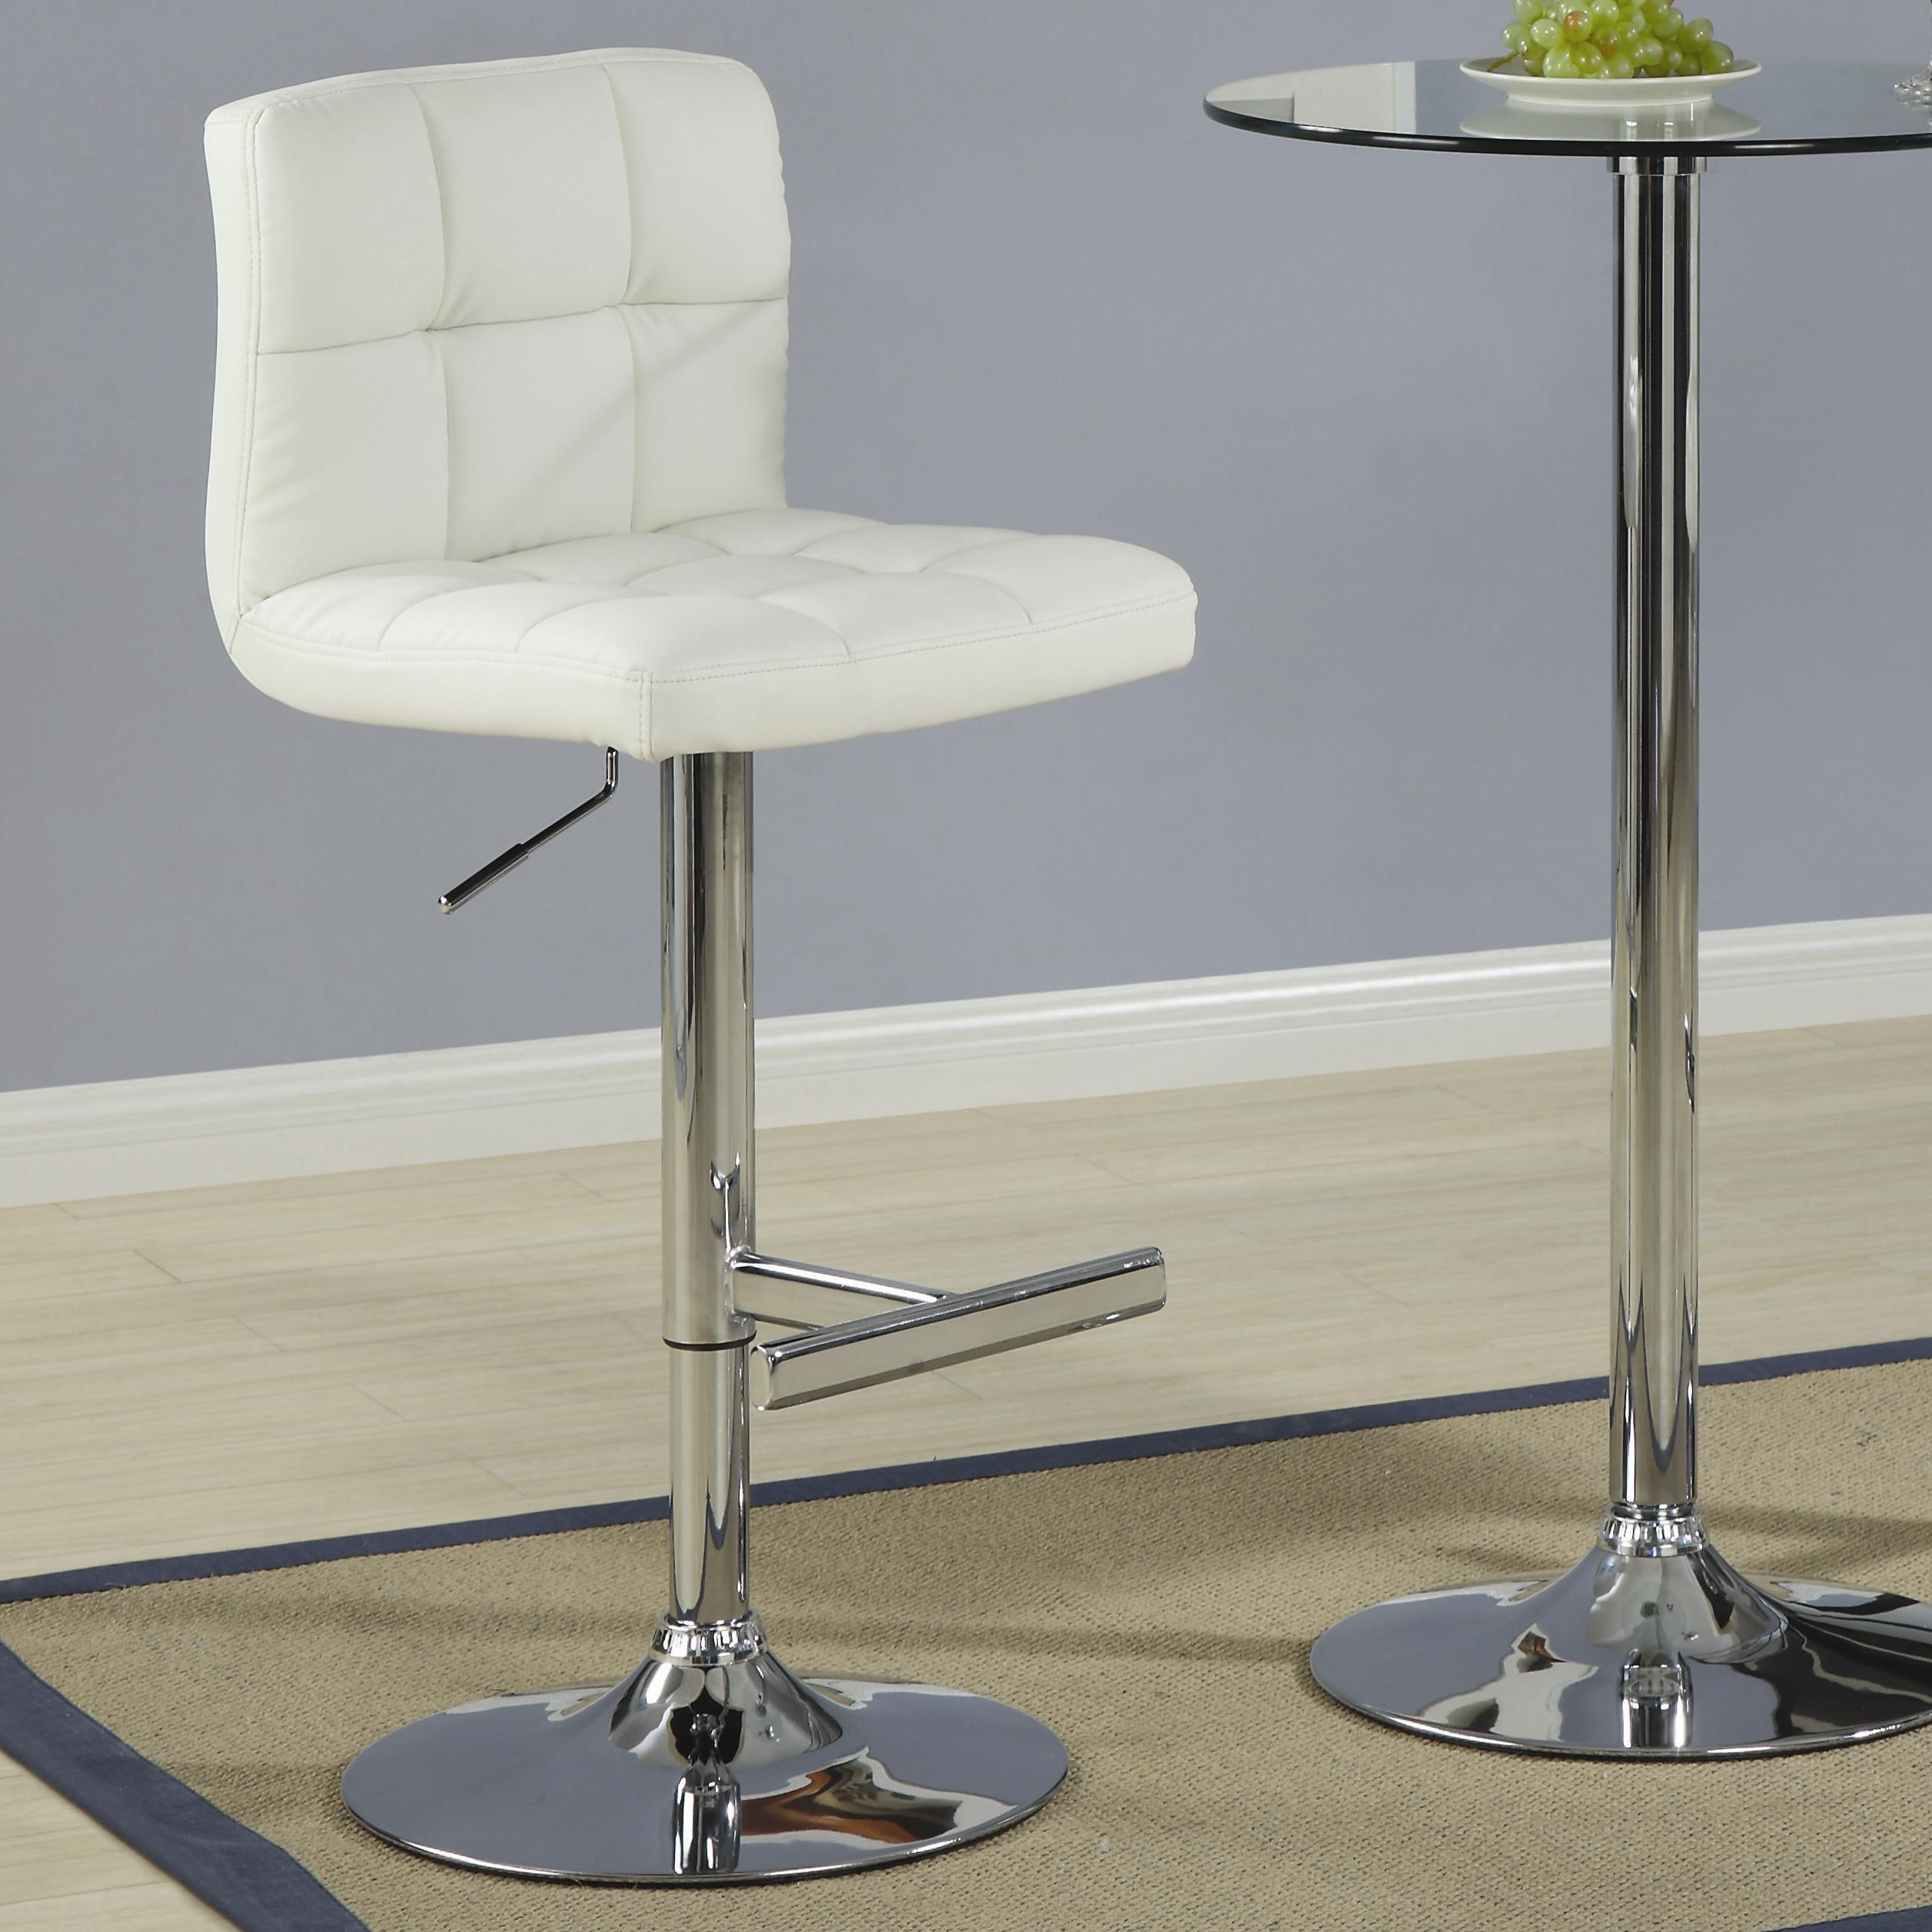 Bar Units and Bar Tables Stool (Cream) by Coaster at Standard Furniture